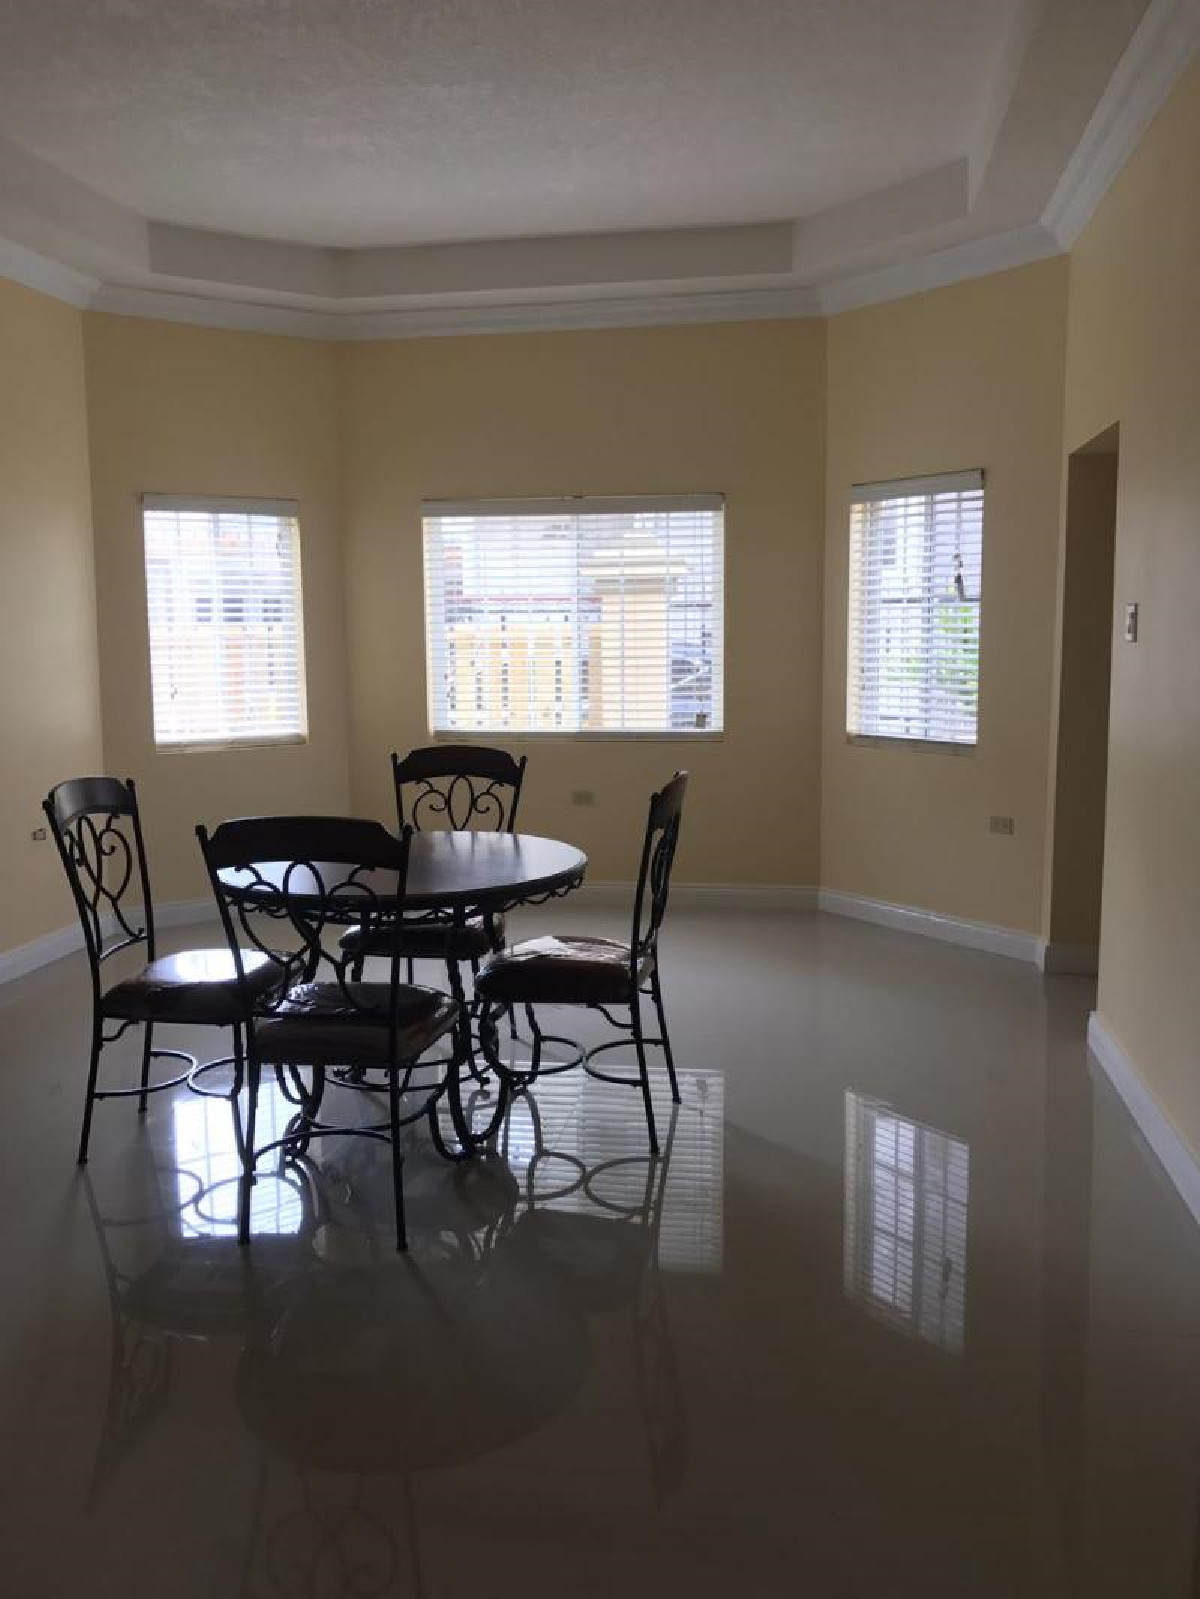 Best ideas about 3 Bedroom For Rent . Save or Pin 3 BEDROOM HOUSE FOR RENT in MANDEVIILE Jamaica Now.